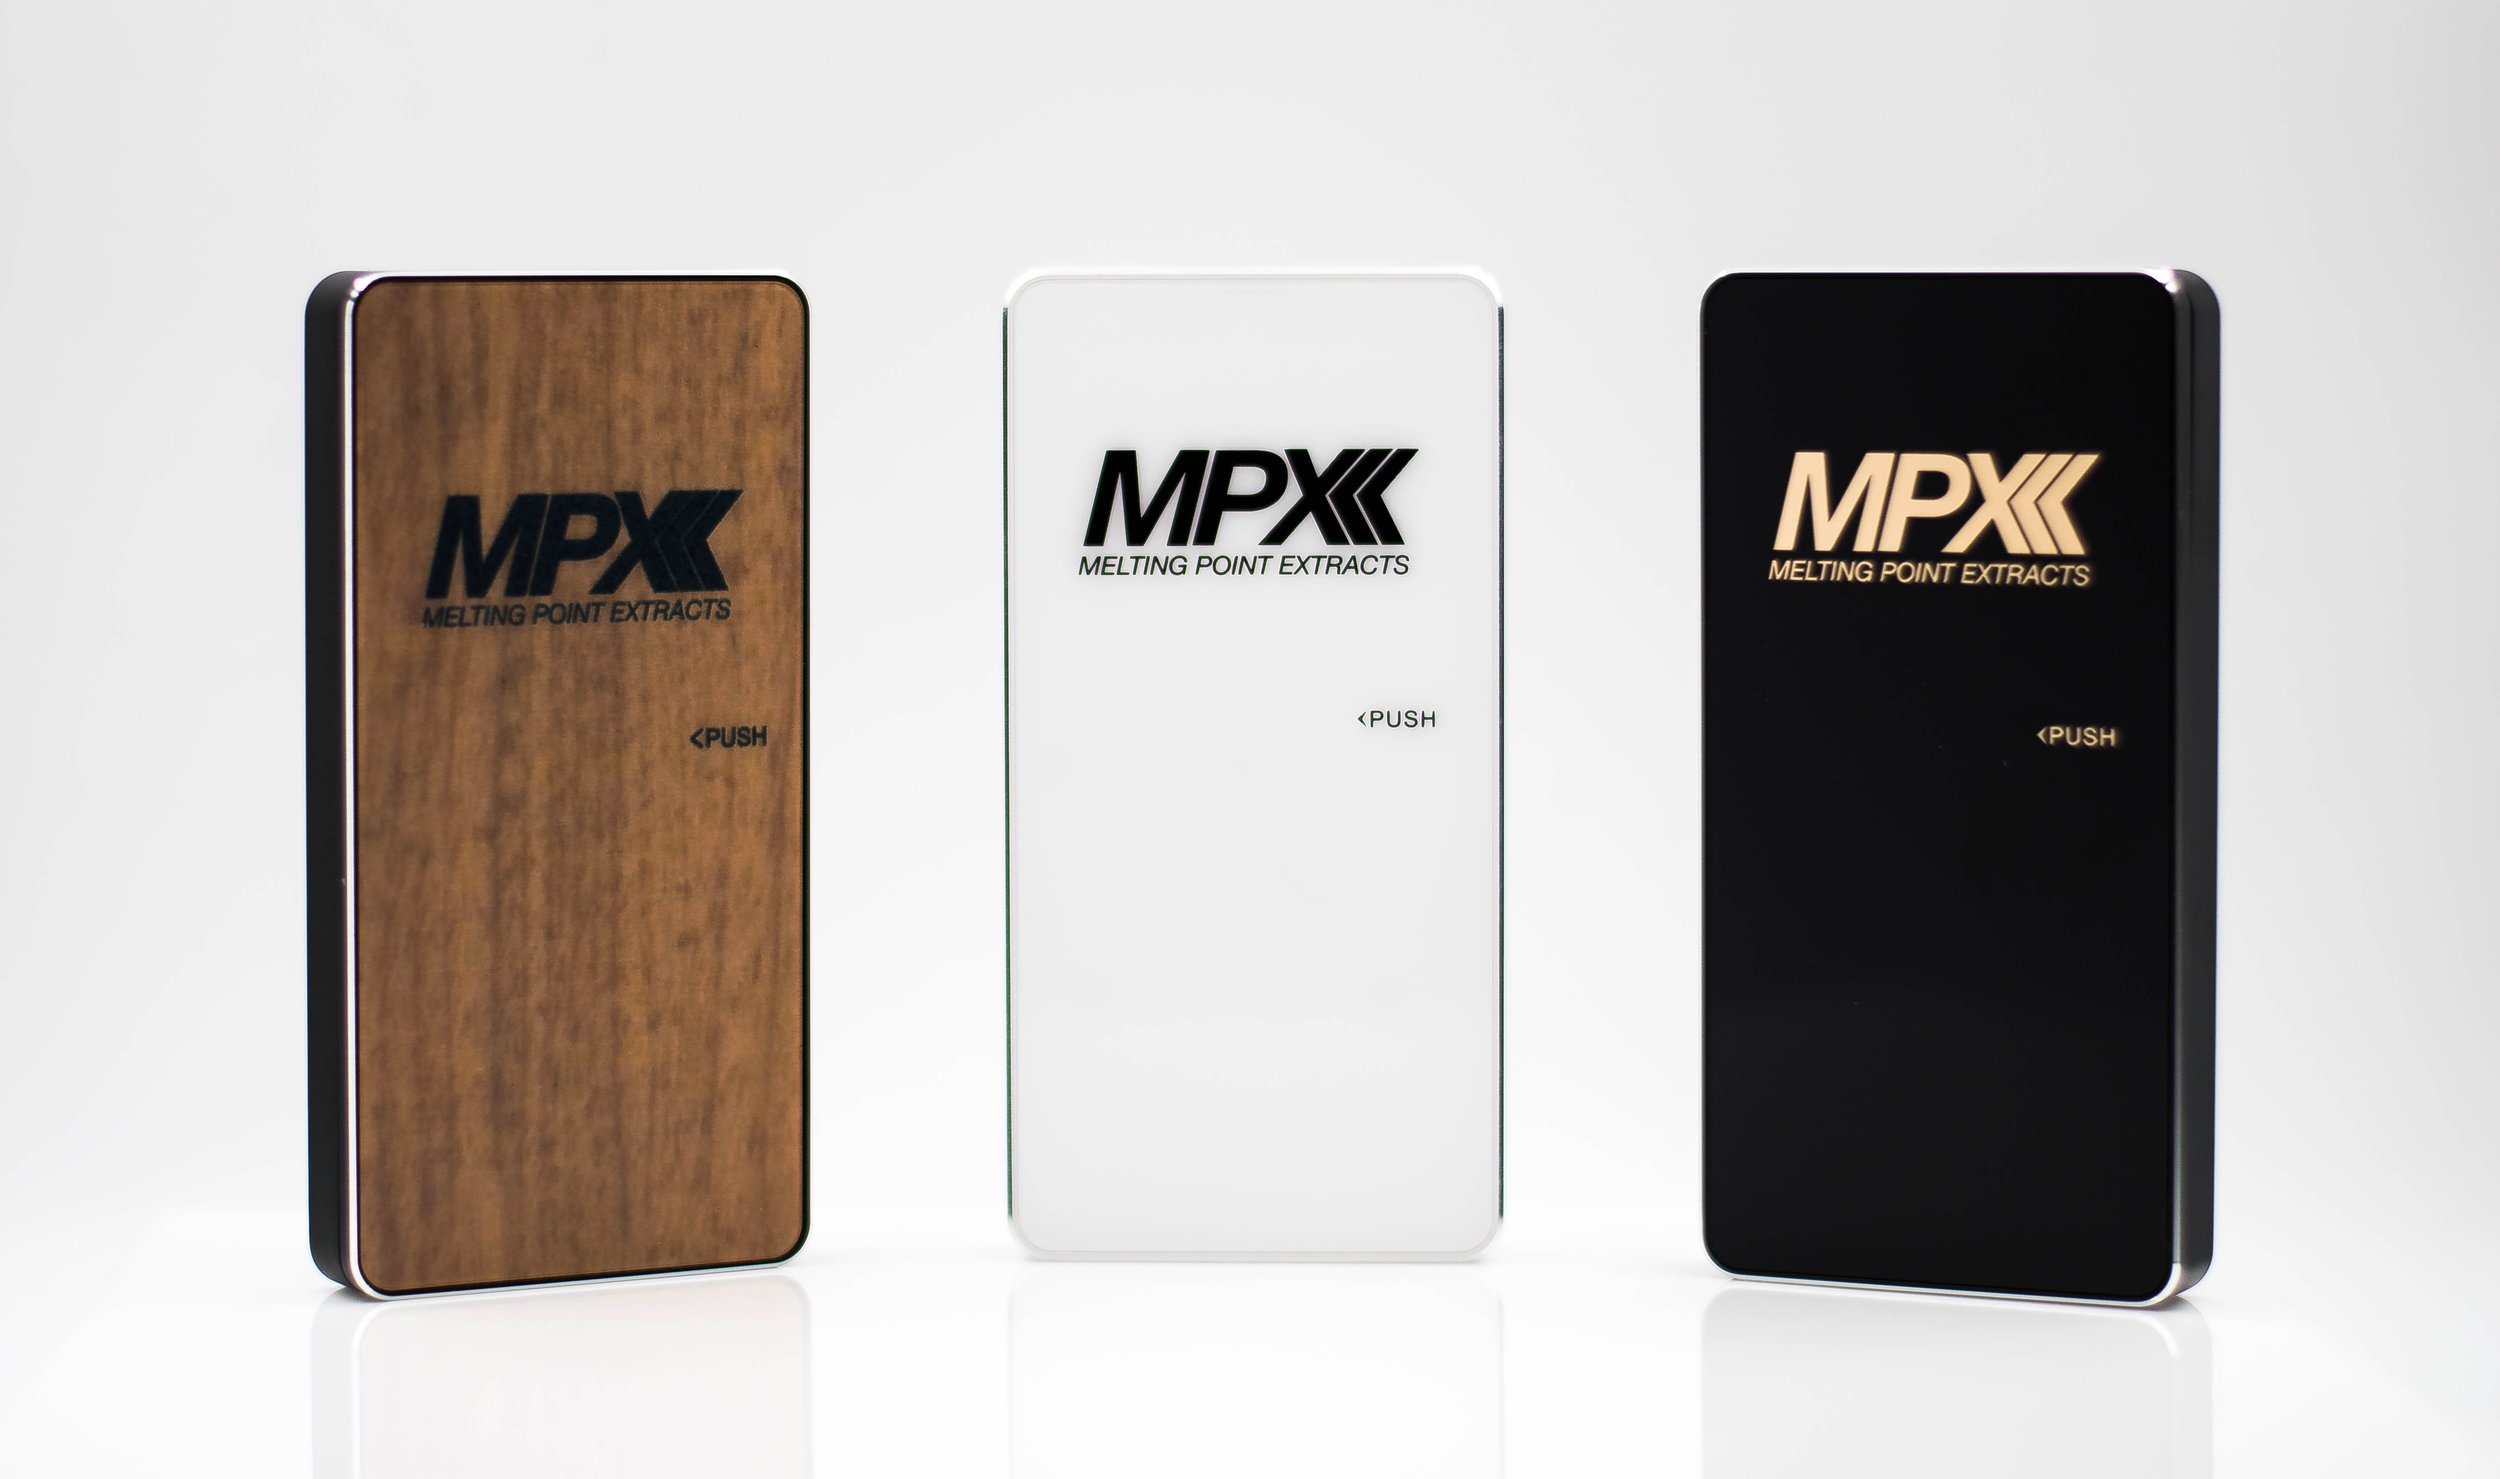 MPX Essential Series - We are happy to announce that both Health For Life locations are now carrying the MPX Essentials Series.Three options to choose from:Black, White, WoodgrainEssential Series includes (2) batteries, (2) .25g carts & charging unit.$99 plus tax